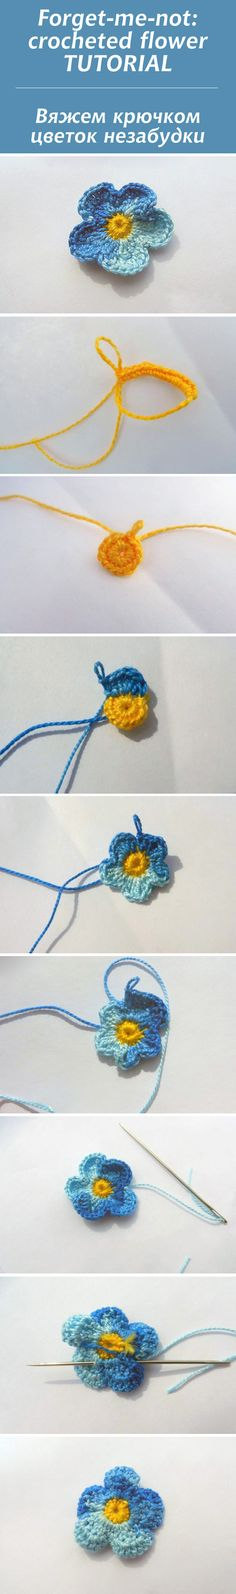 Вяжем крючком цветок незабудки / Forget-me-not: crocheted flower TUTORIAL  #crochet #flower #tutorial